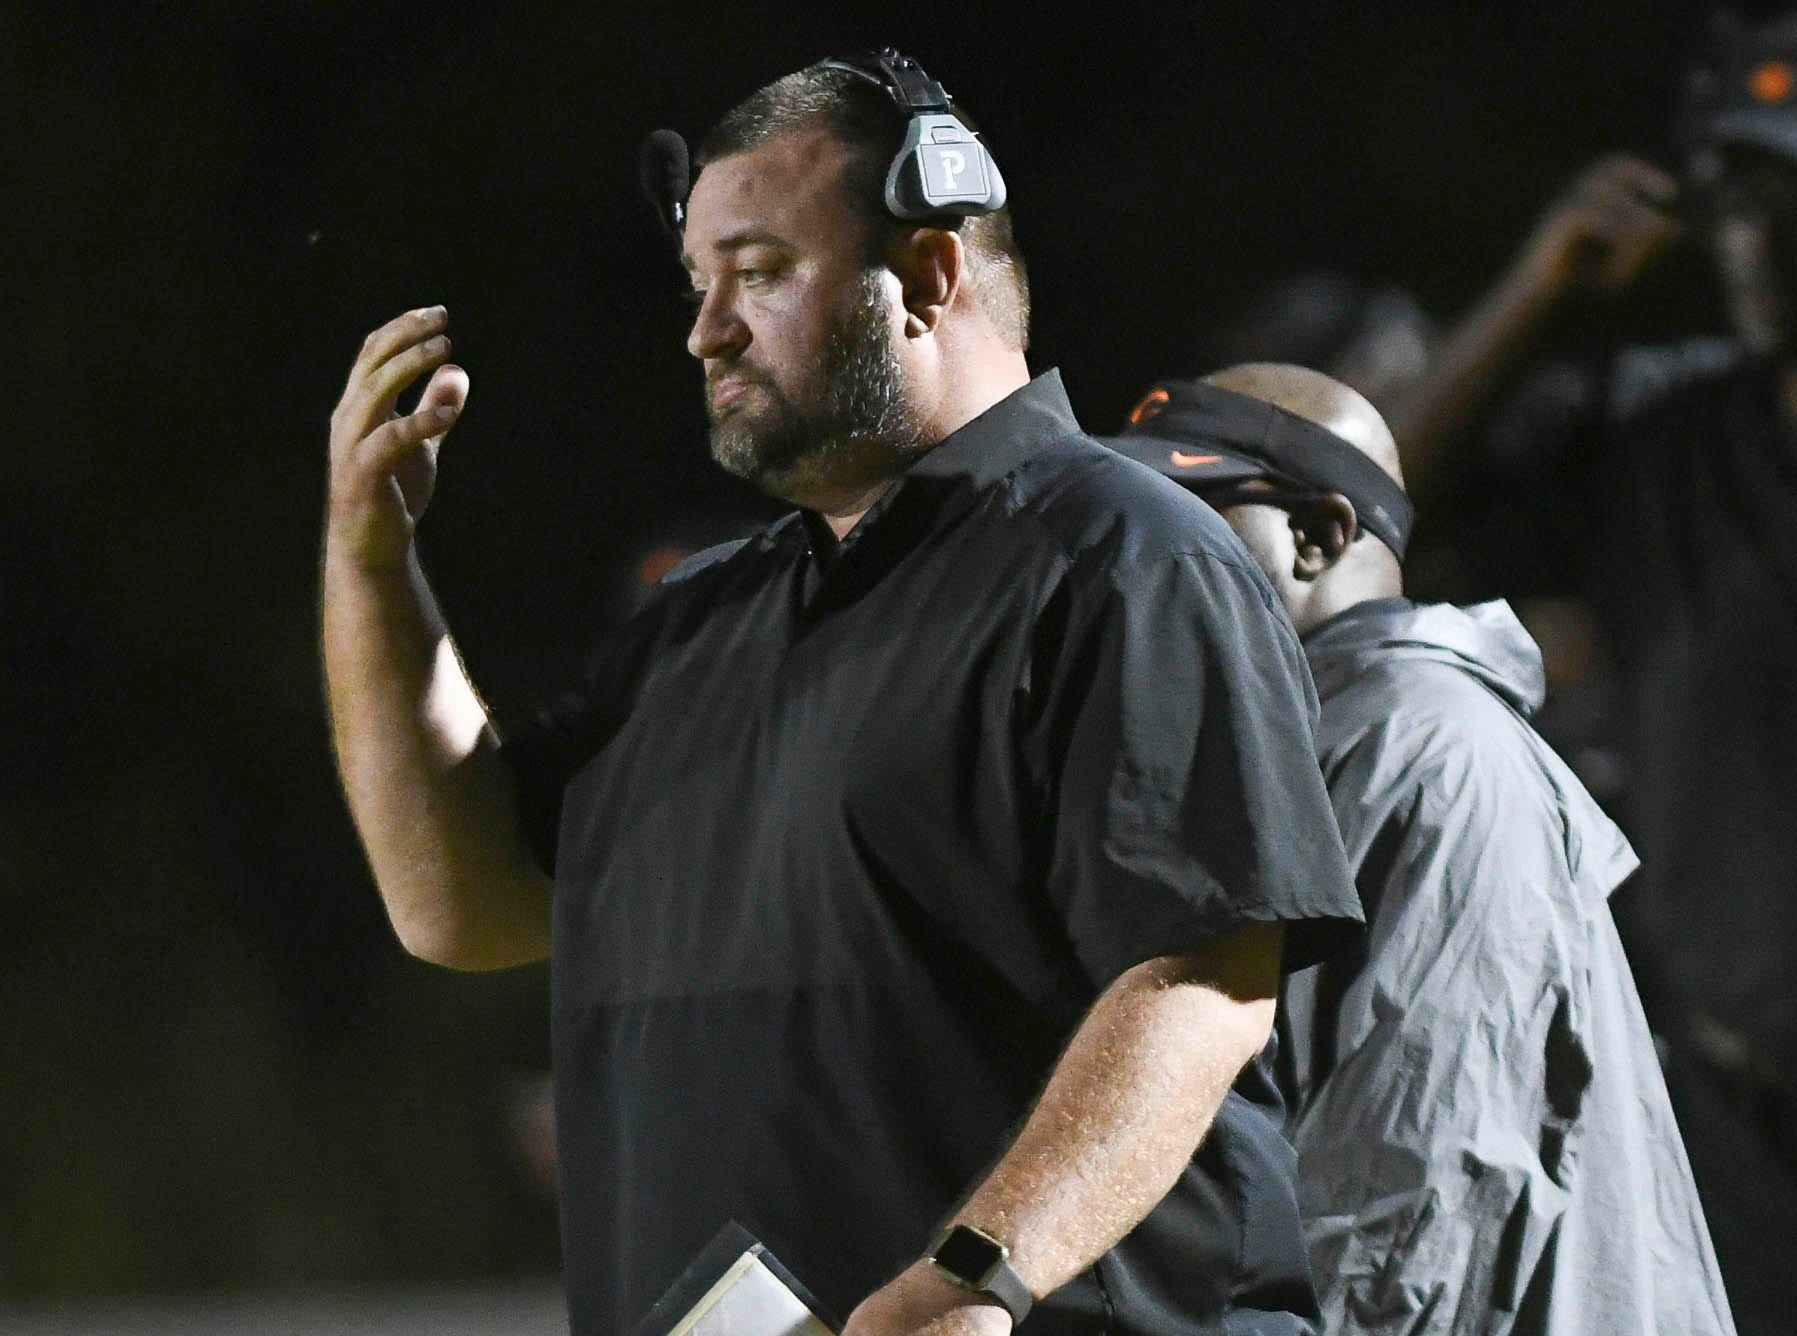 Cocoa football coach Ryan Schneider gestures to his team during Friday's game.